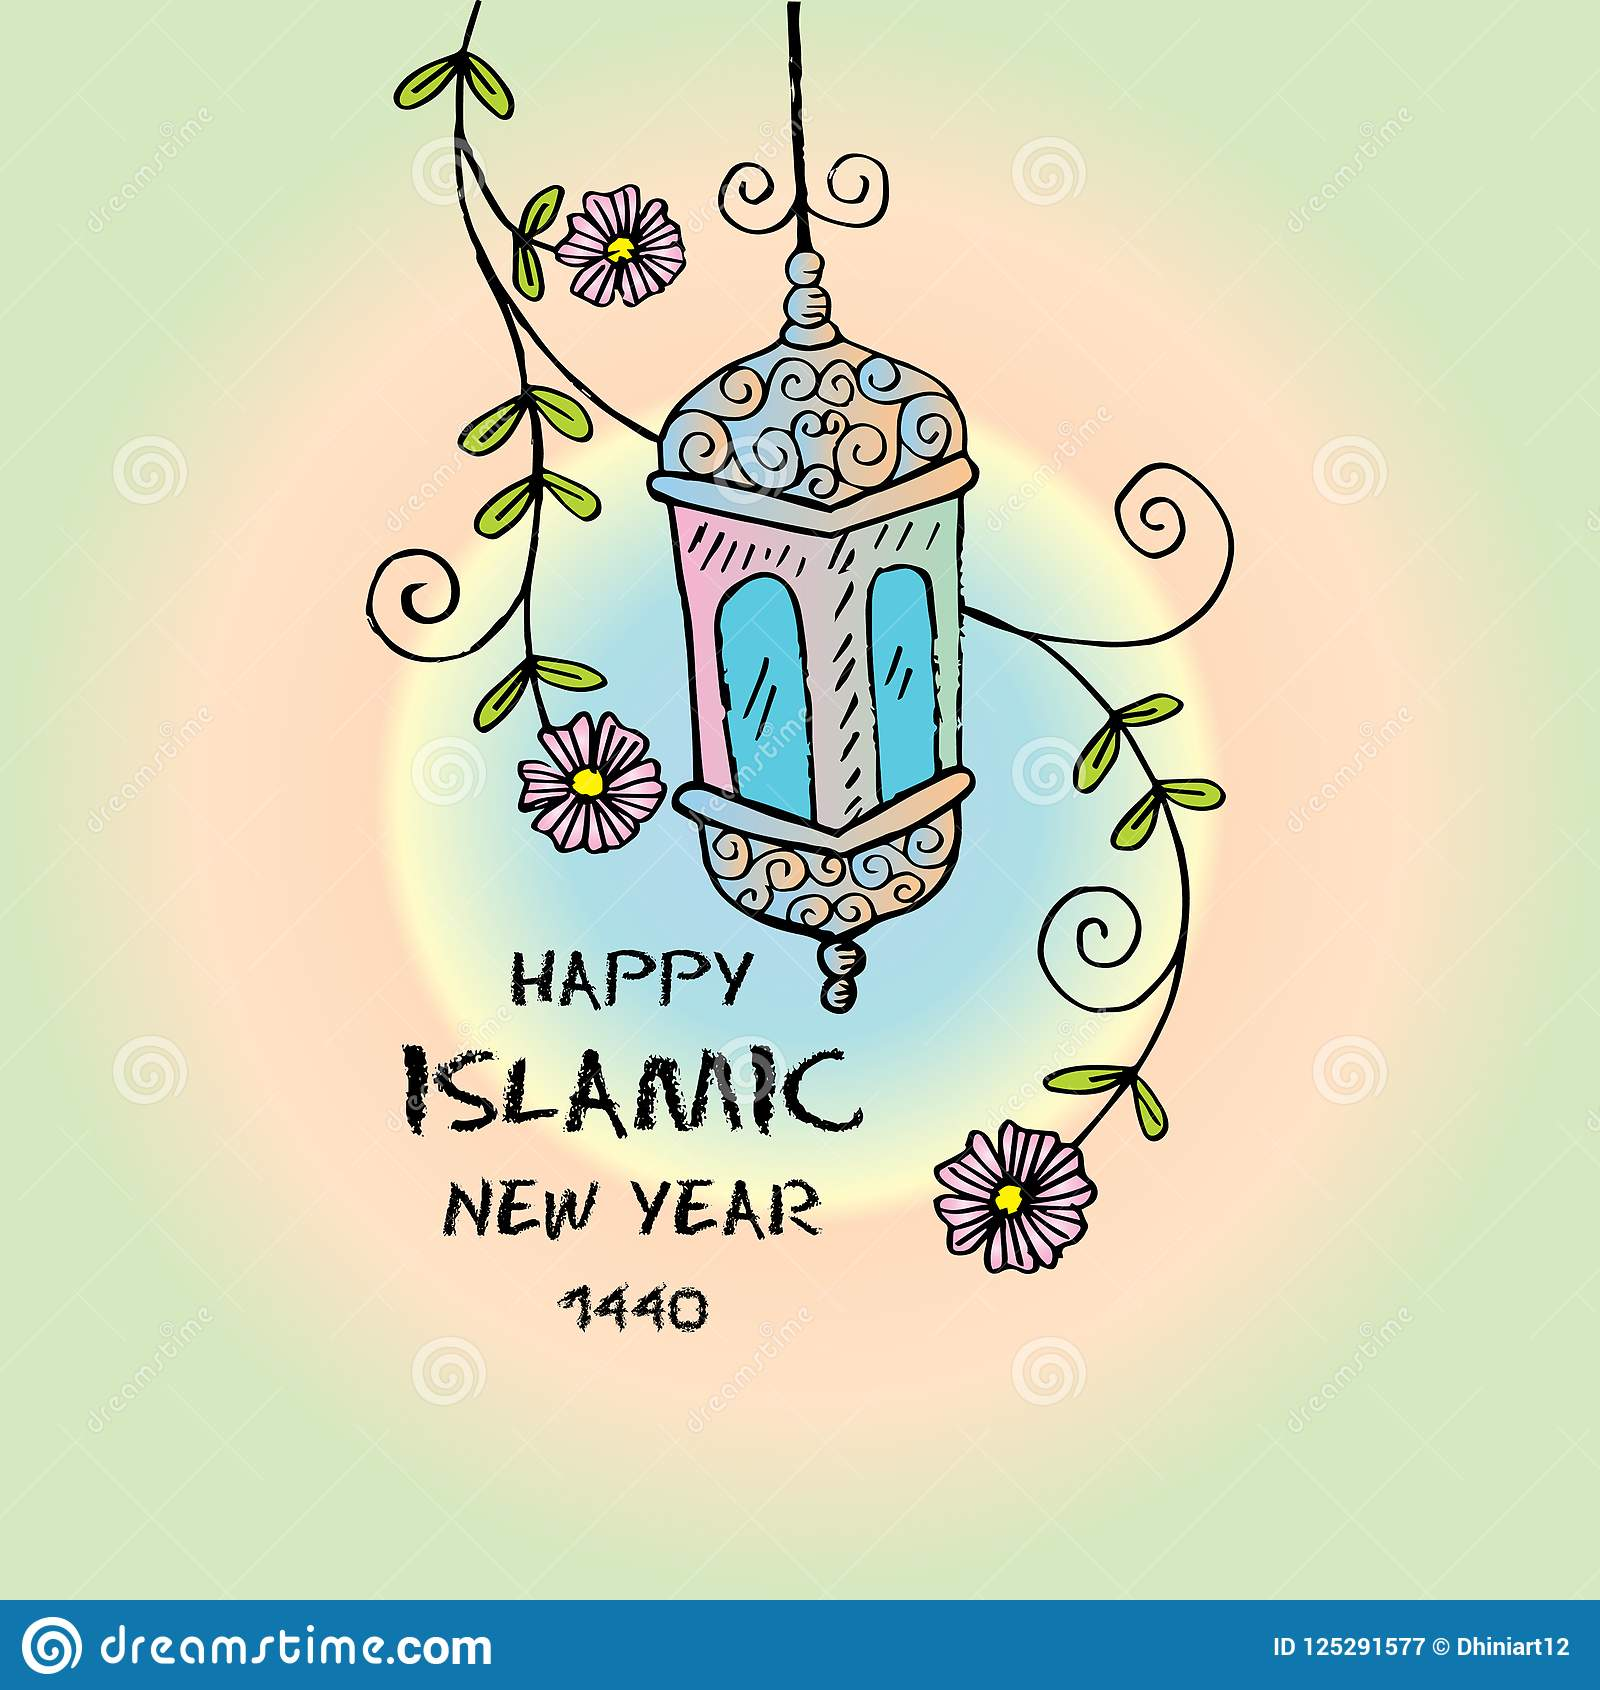 Happy Muharram1440 Hijri Islamic New Year Stock Illustration